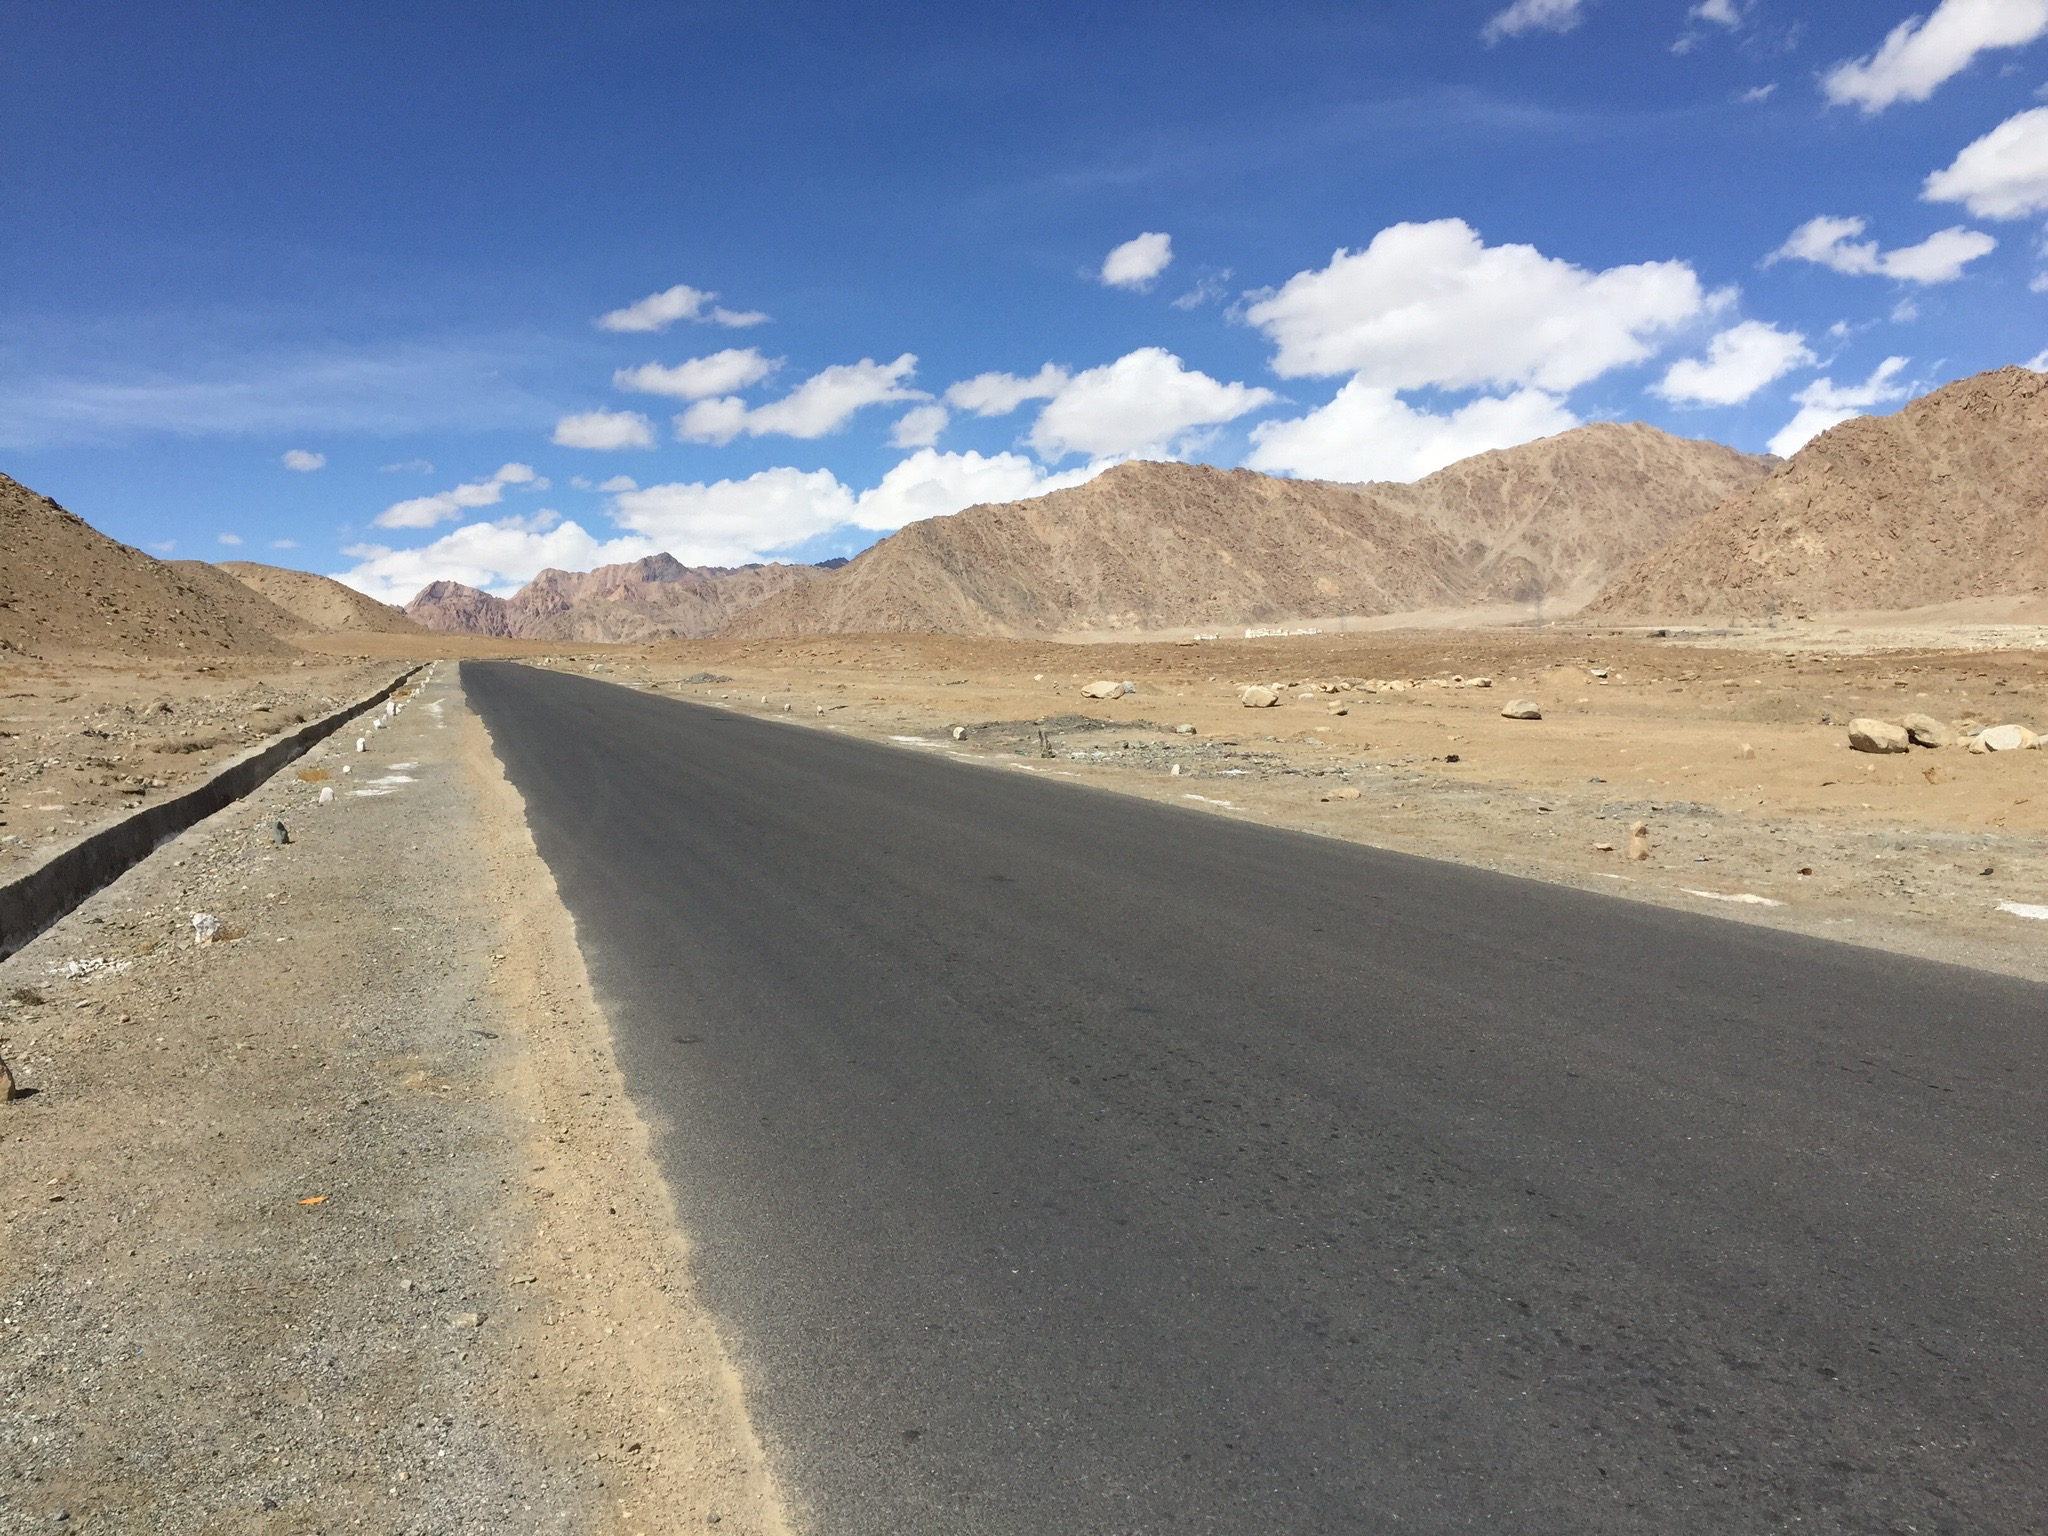 Srinagar-Leh Highway, Ladakh, India